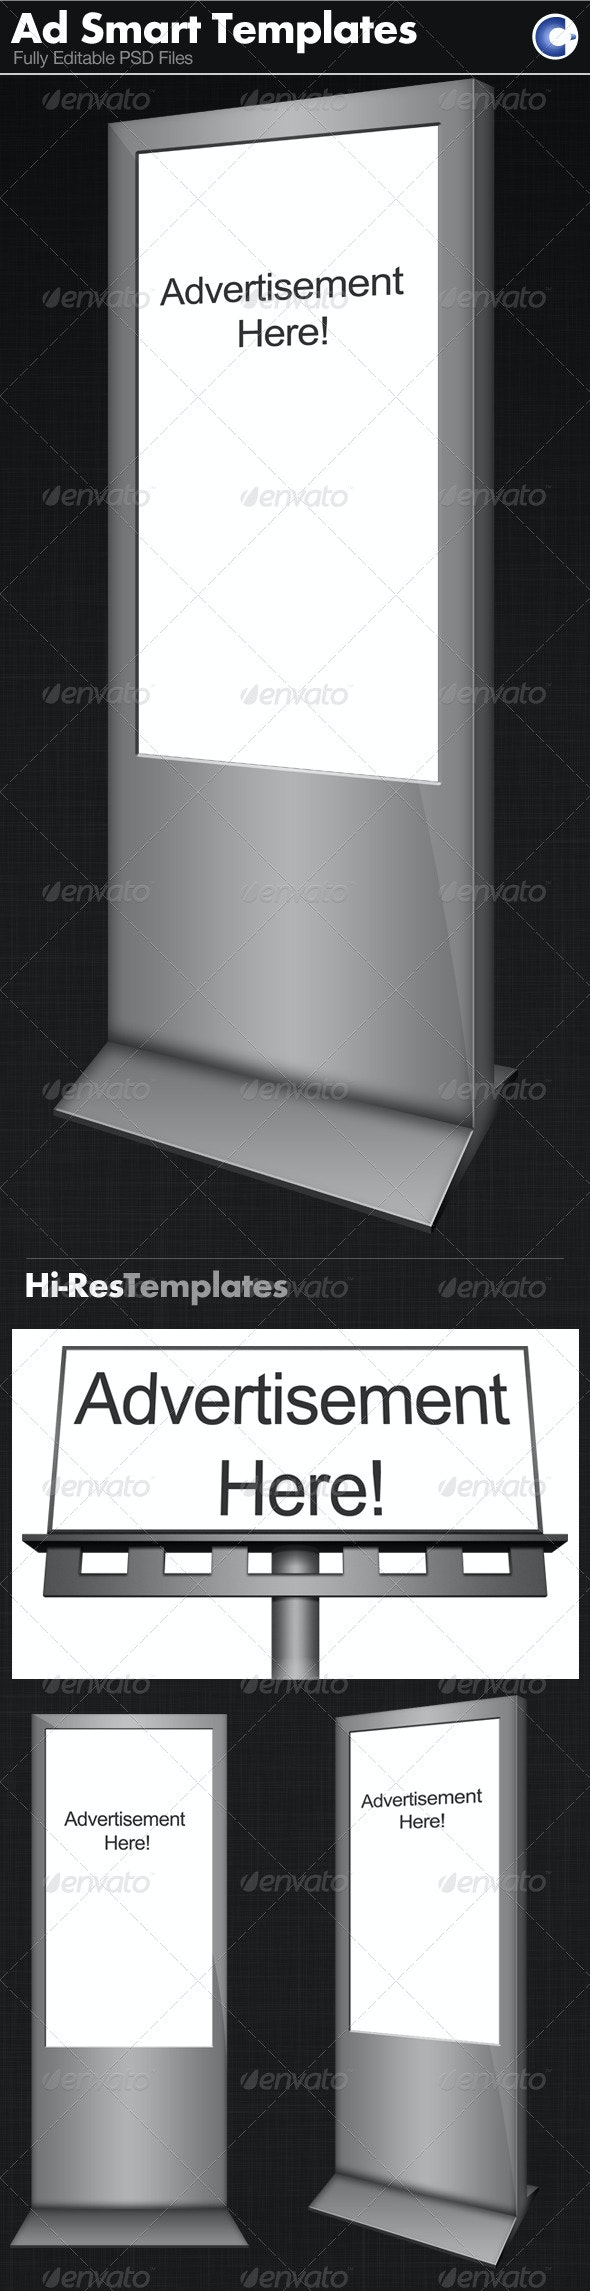 Advertisement Templates - Smart Object - Signage Print